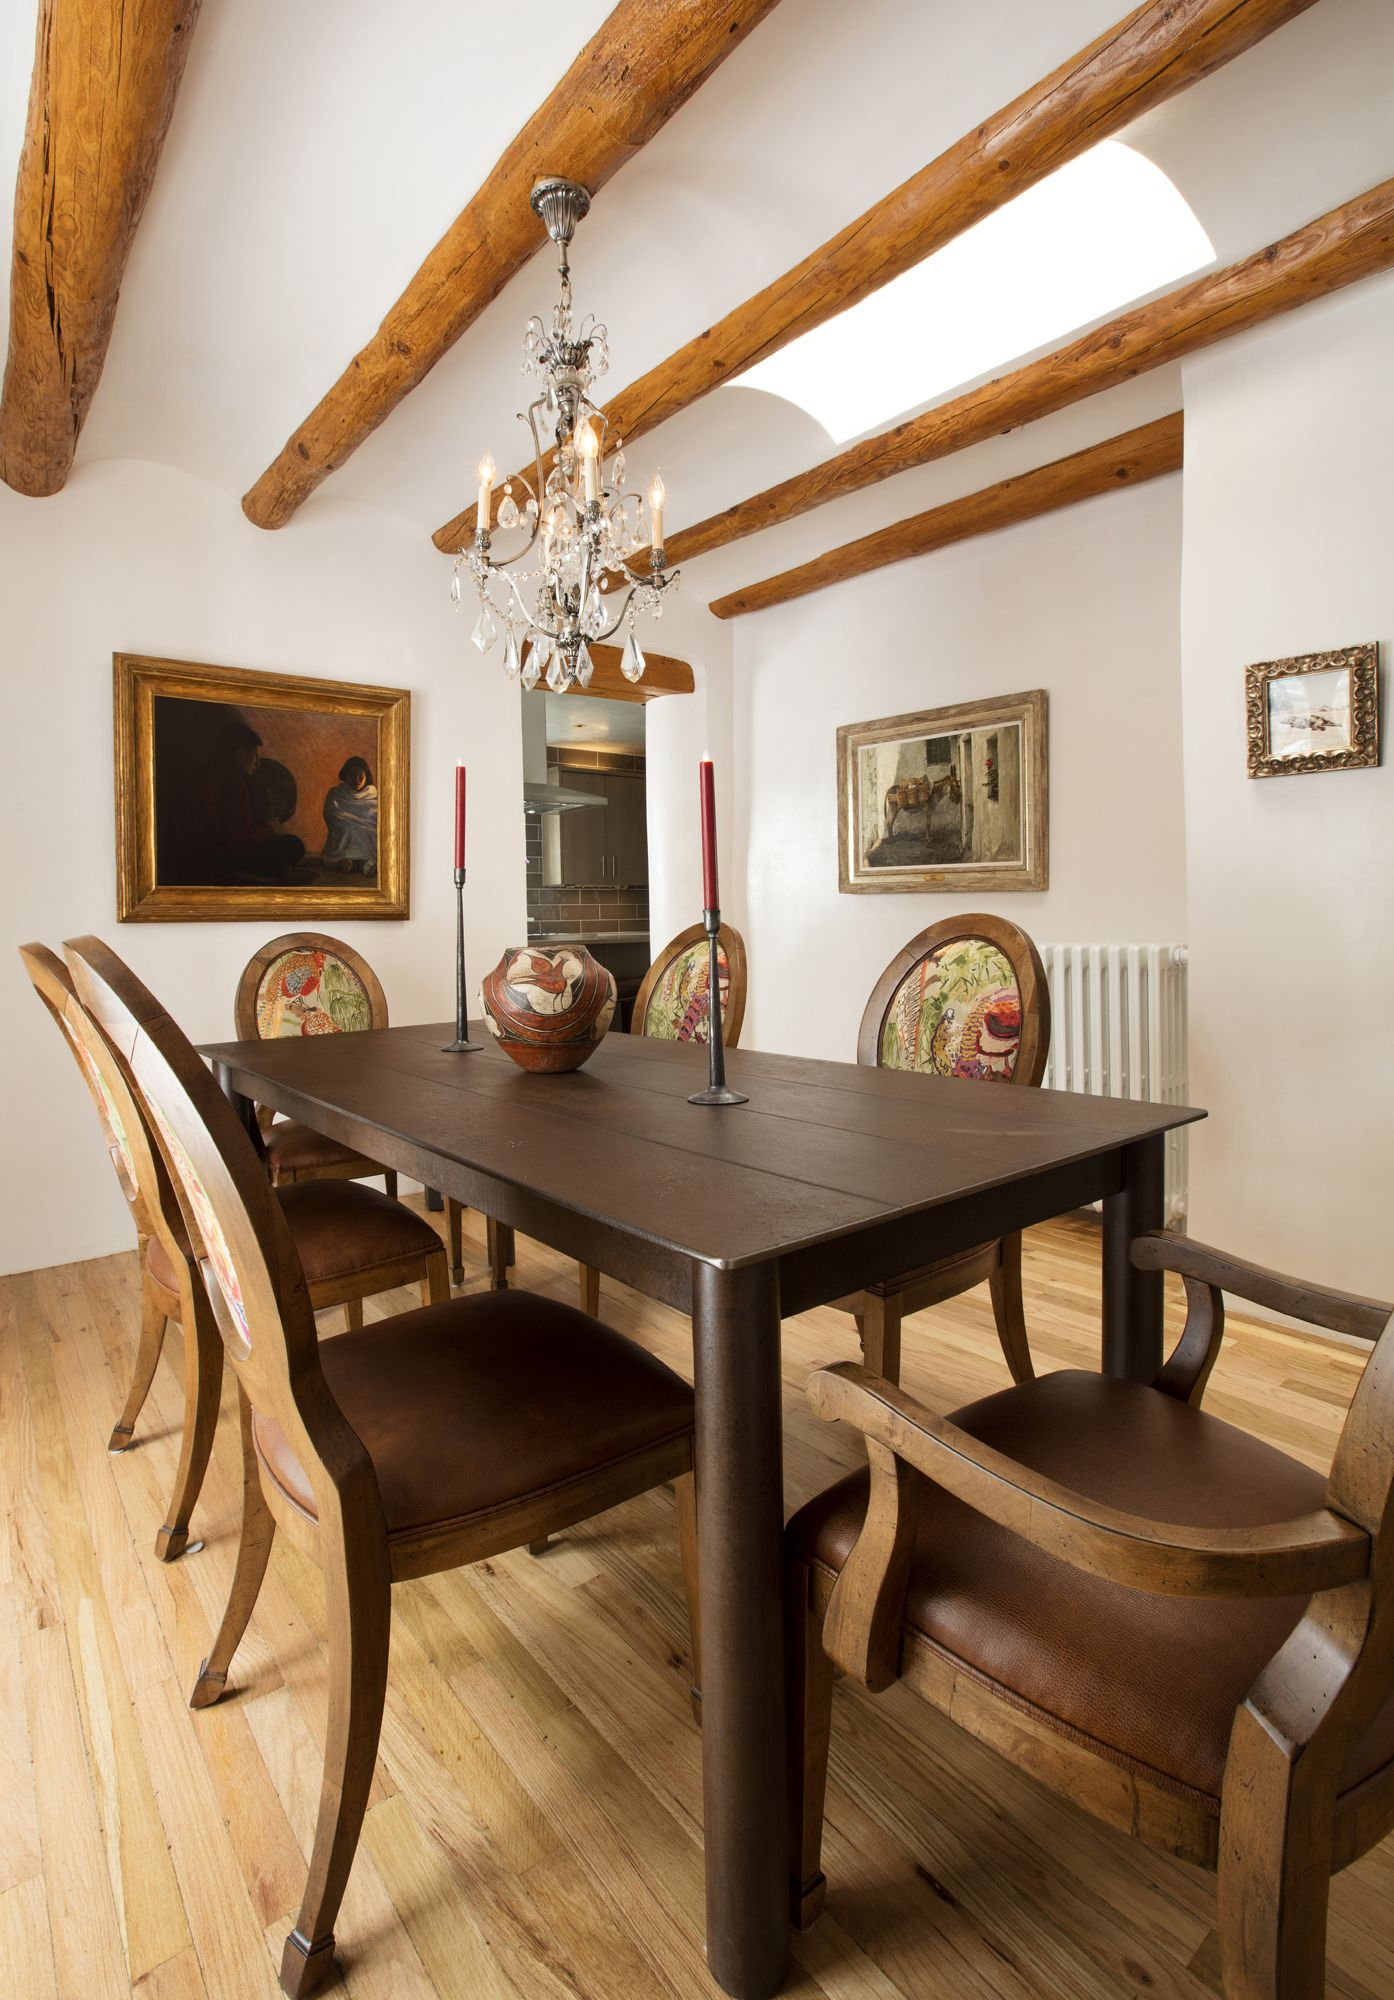 Santa fe style interior design - David Naylor Interiors In Santa Fe New Mexico Offers Full Service Residential And Commercial Interior Design Locally As Well As Nationally